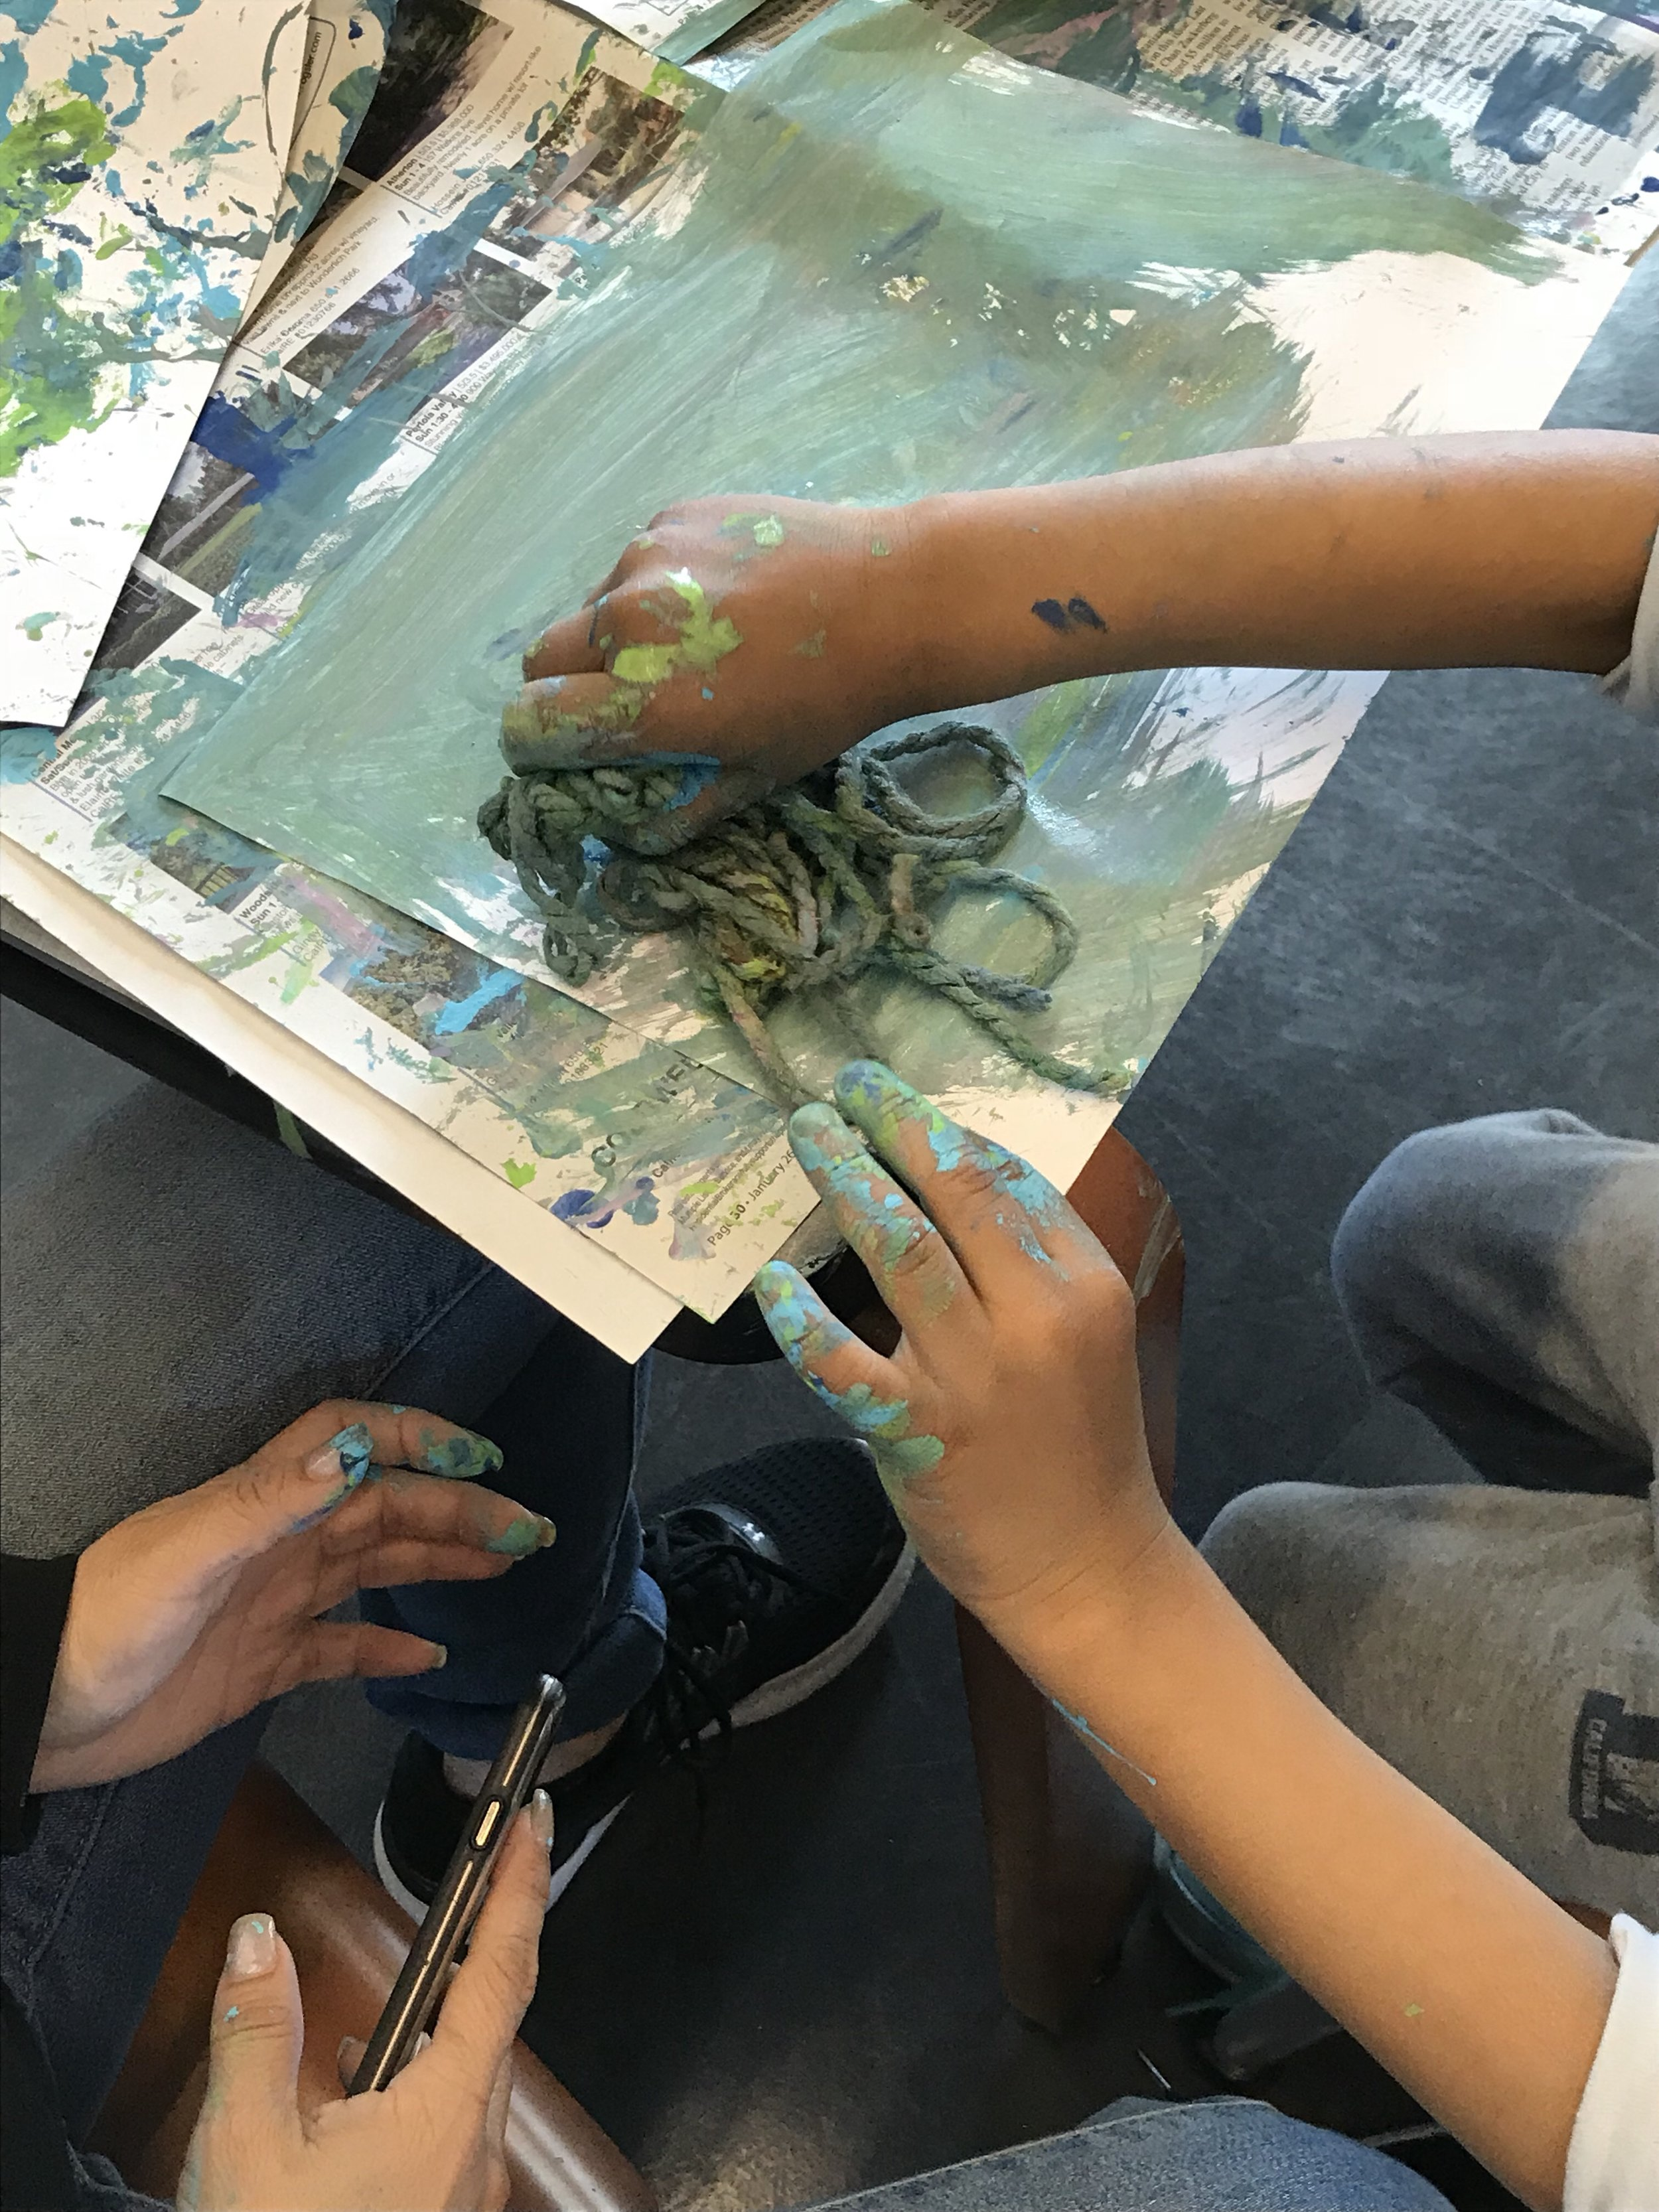 Here, the student is using his yarn in a pile to paint big swaths of color.